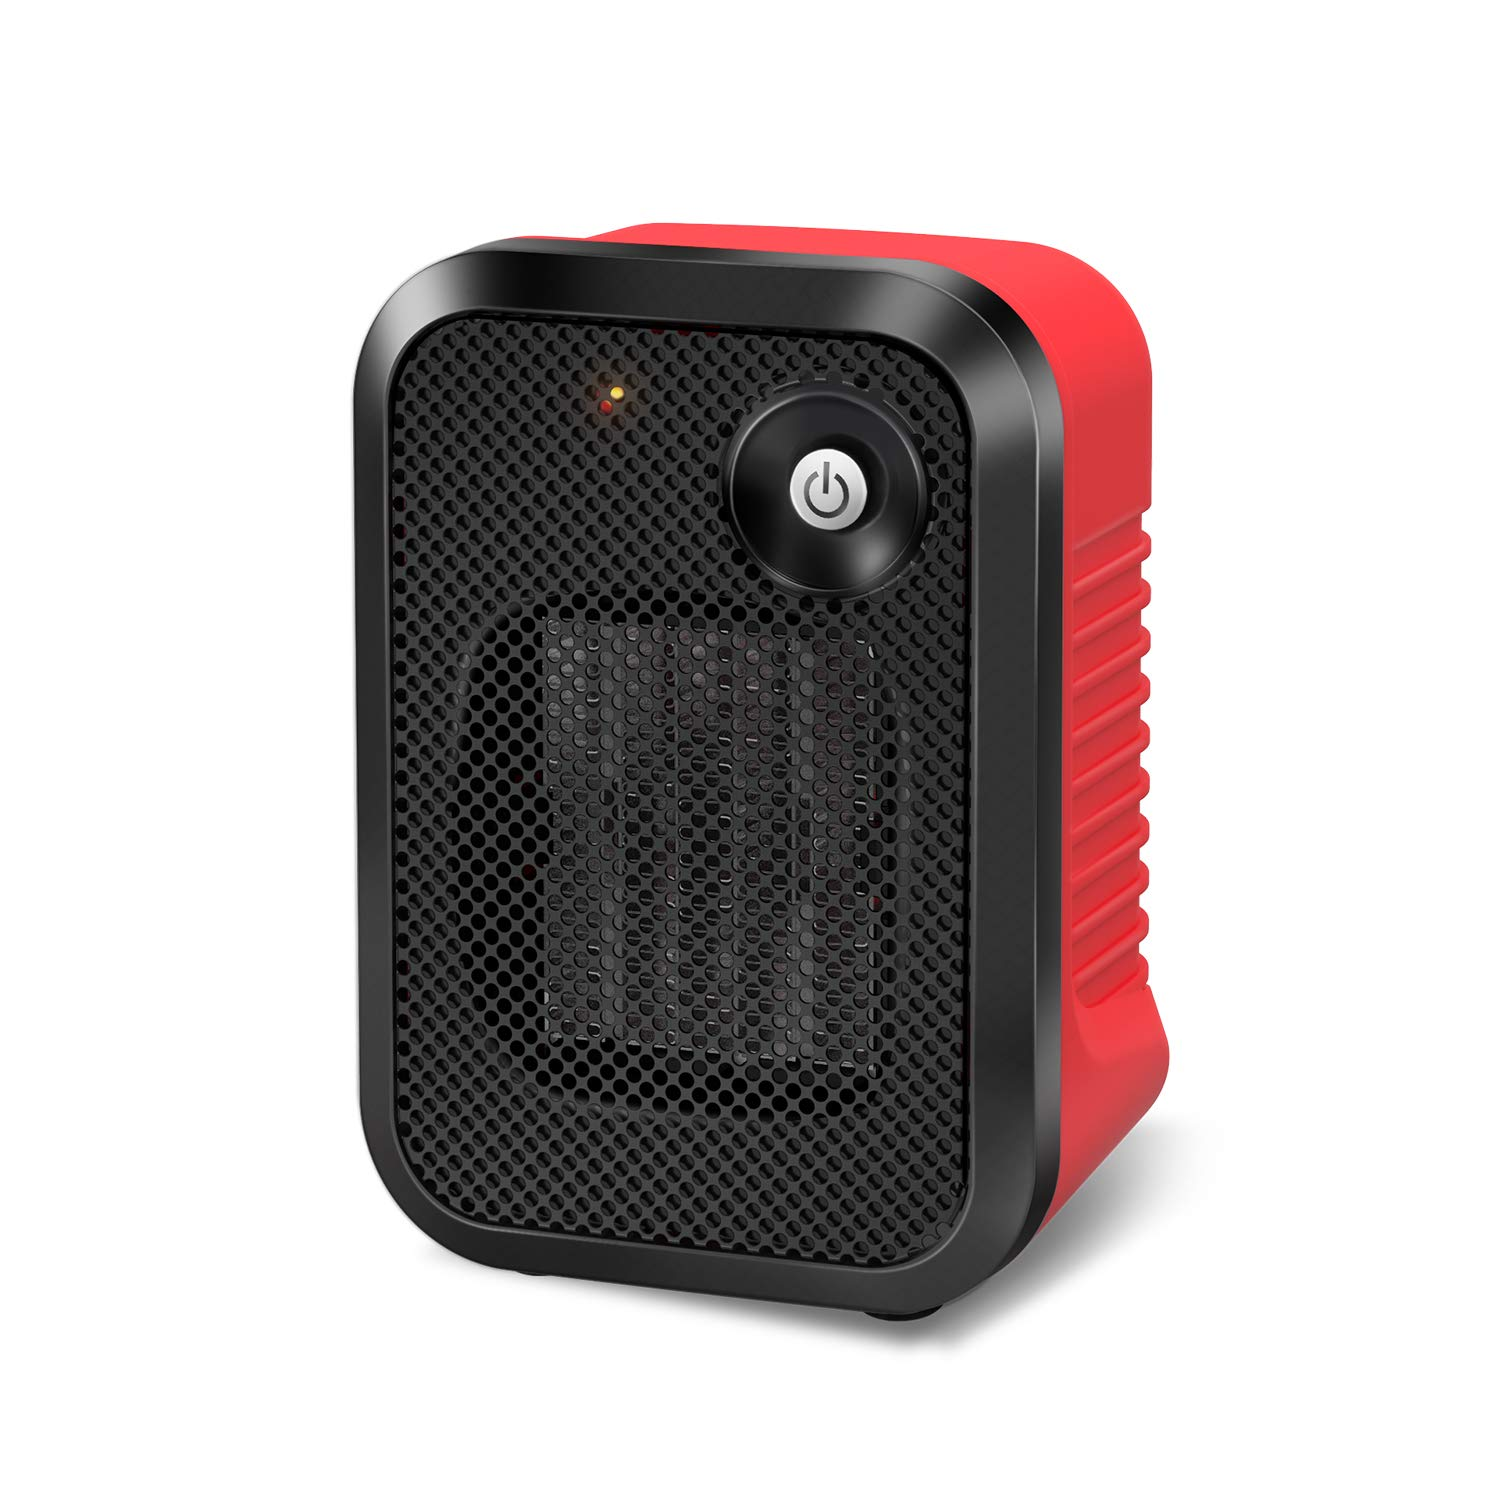 Andily Space Heater Electric Heater for Home & Office